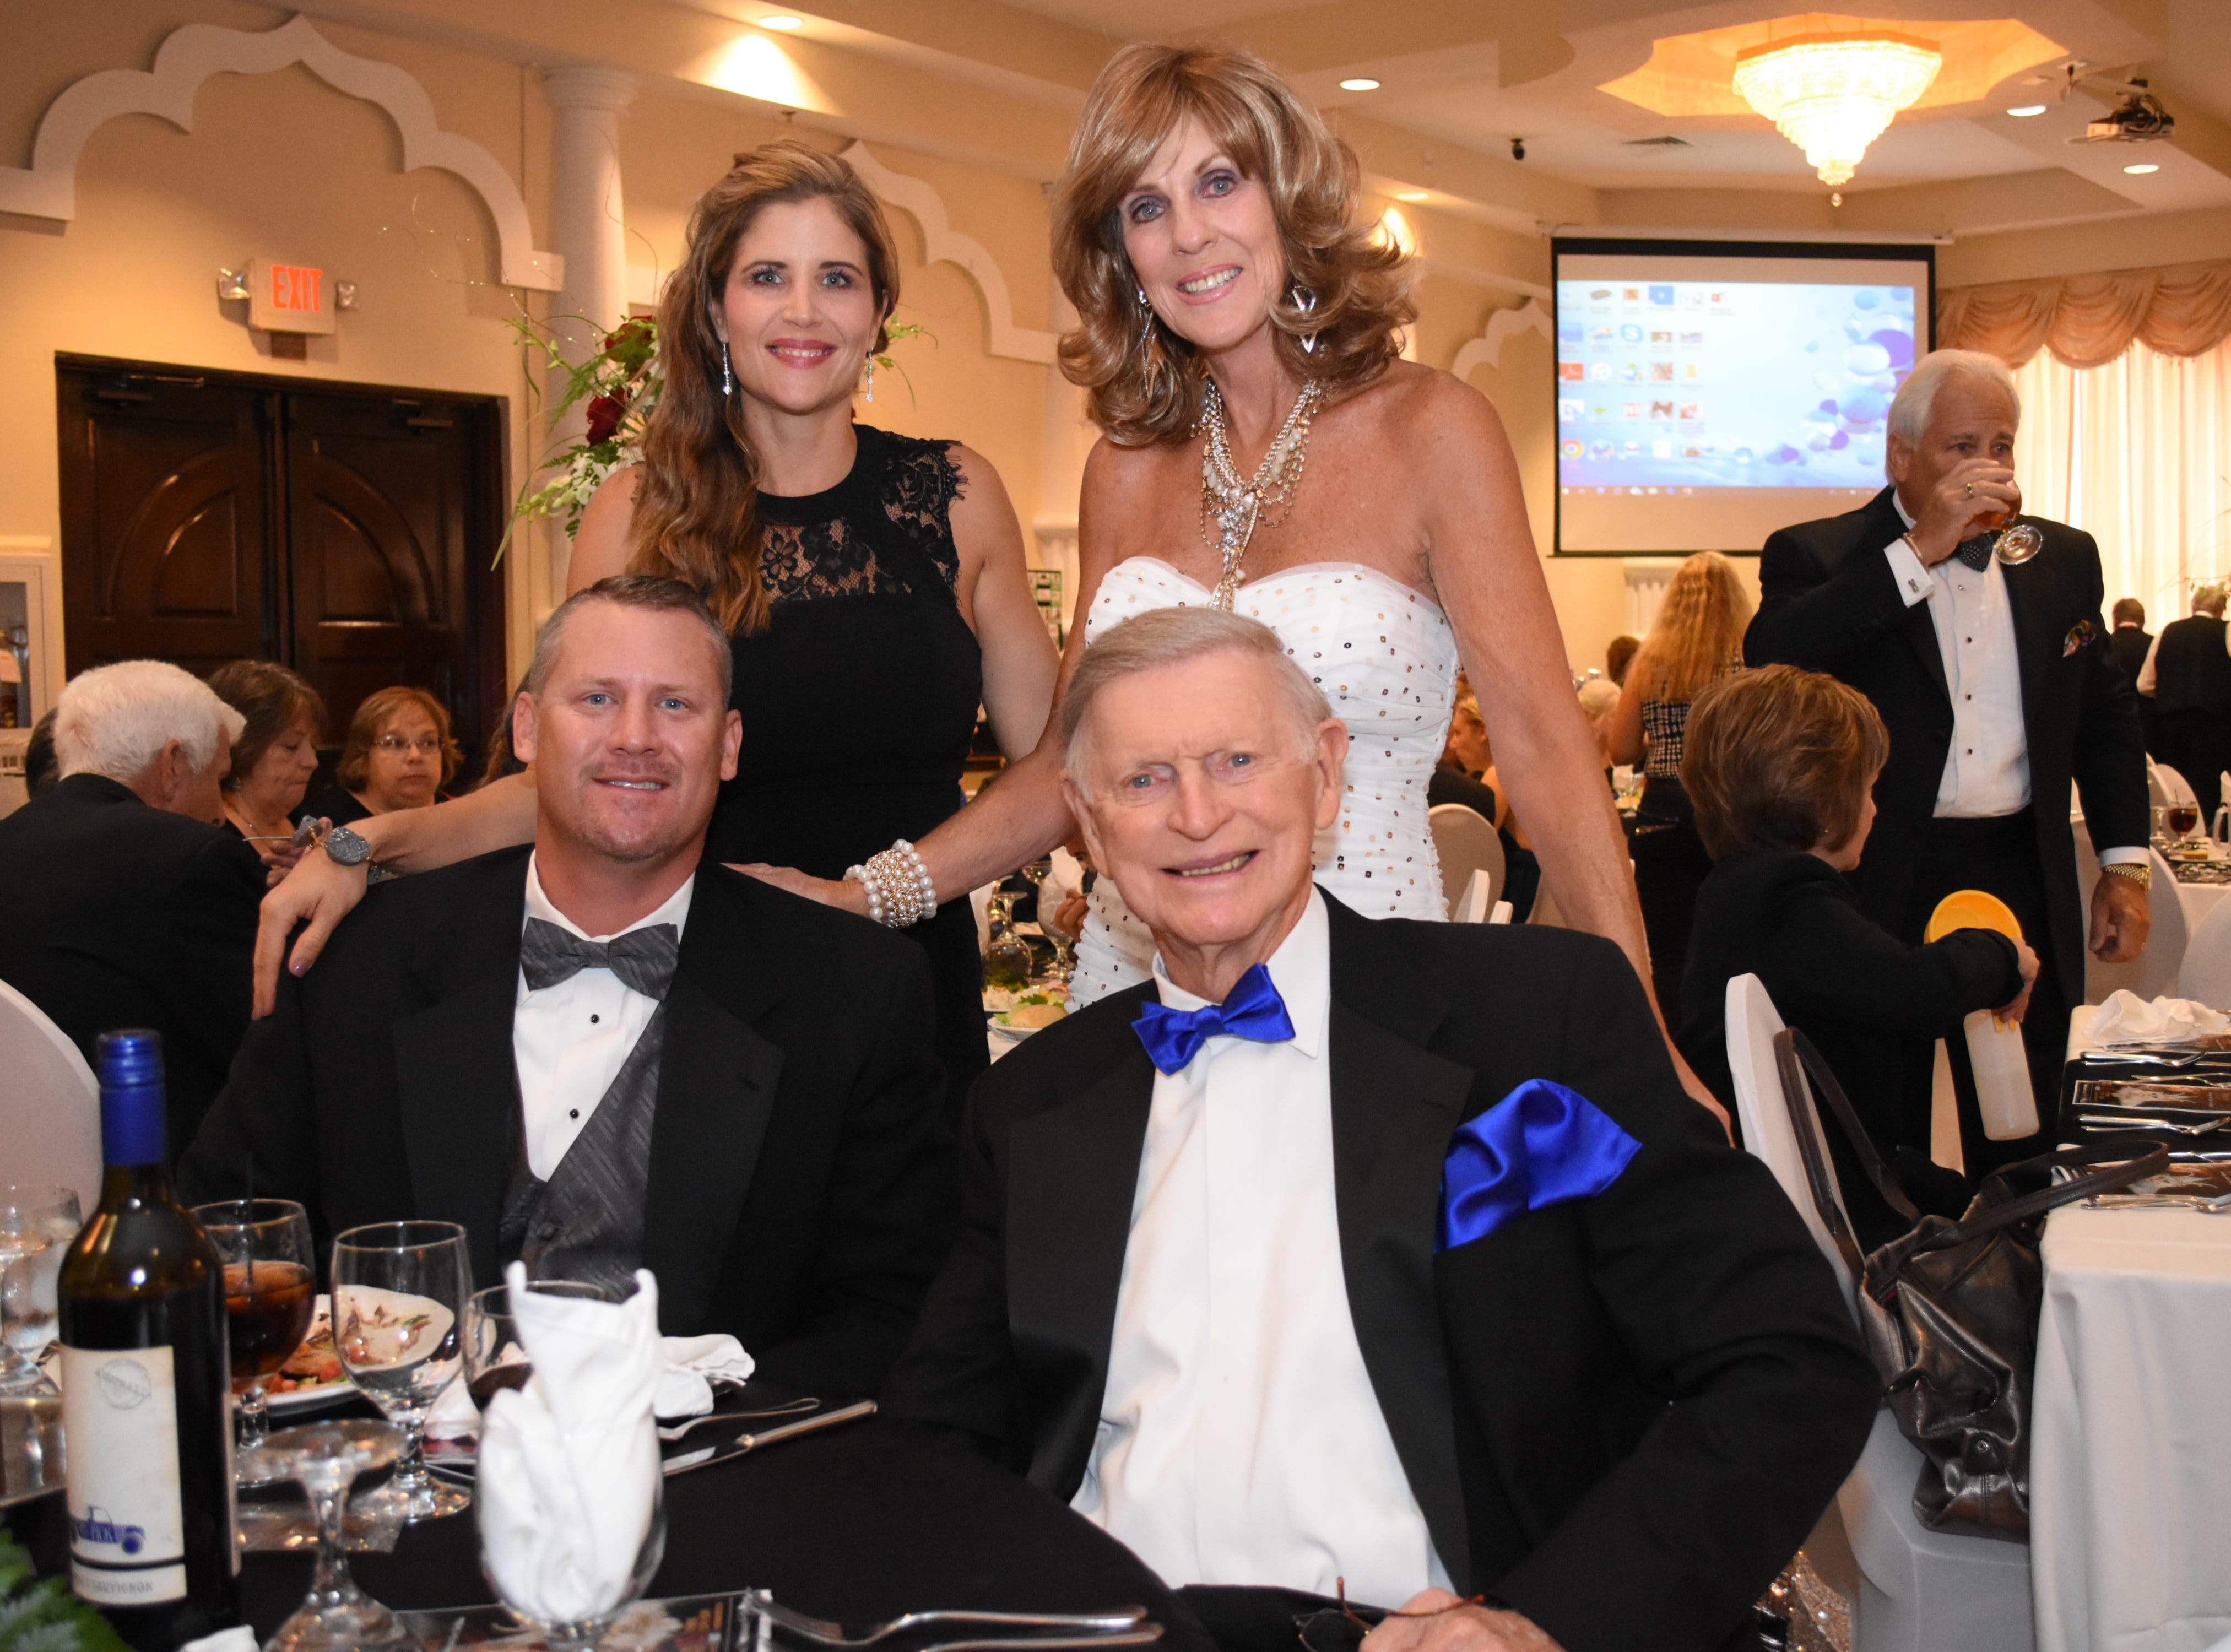 Tom, Drew, Susie, and Lindsey Wasdin pose for a photo. Susie and Tom are Brevard 2018 Tuxes and Tails honorary hosts.